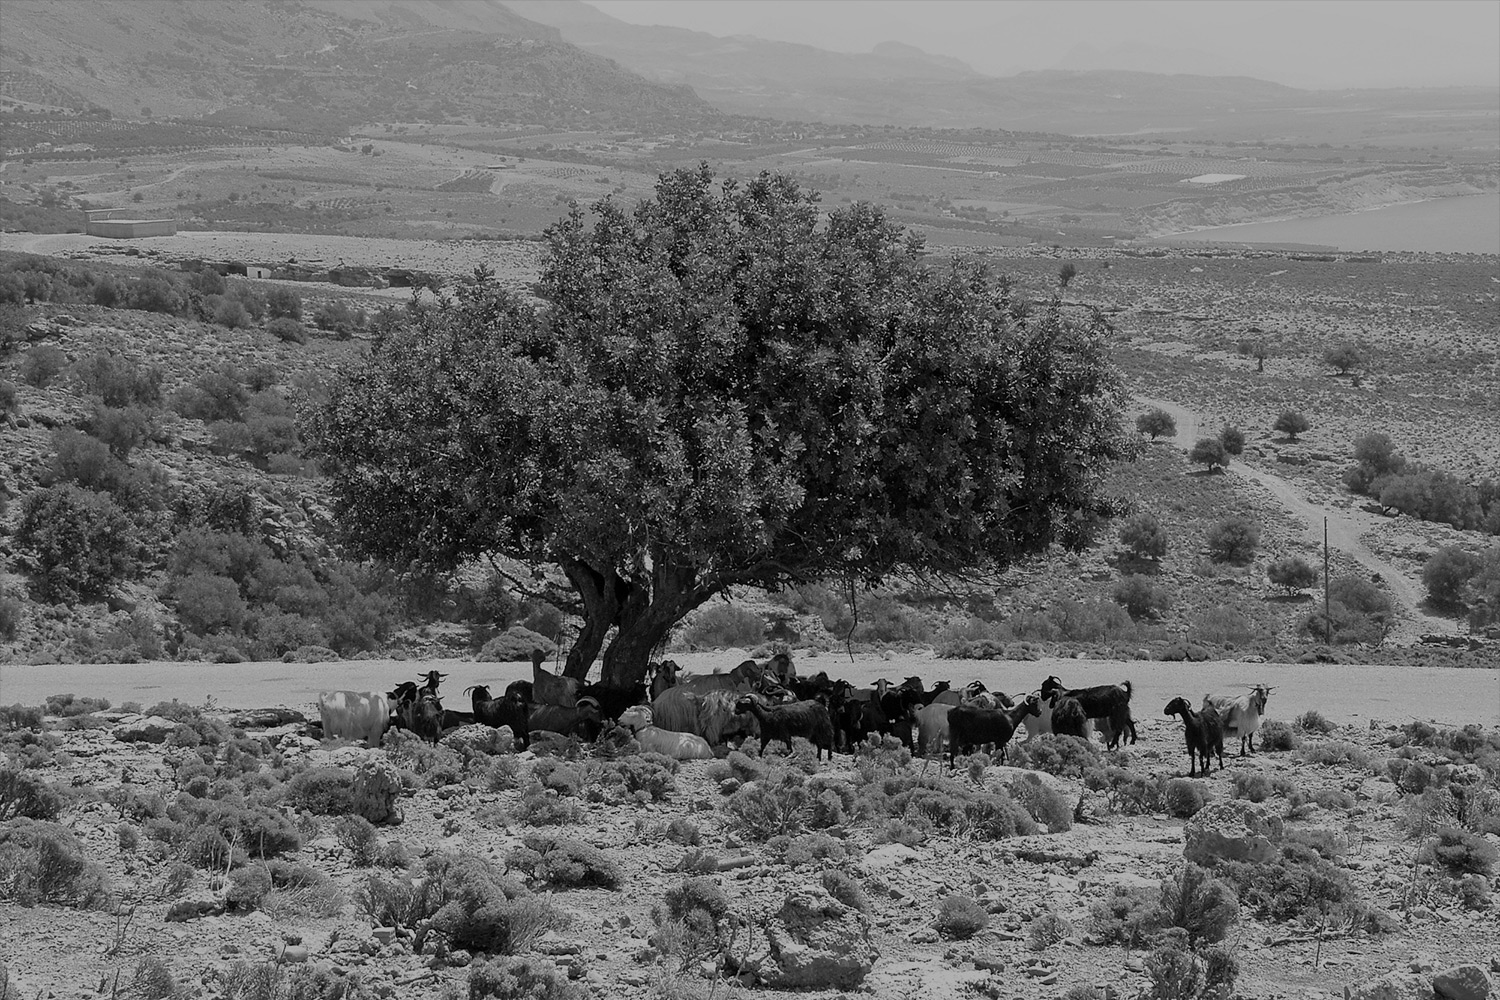 Black and white image of goats under a tree